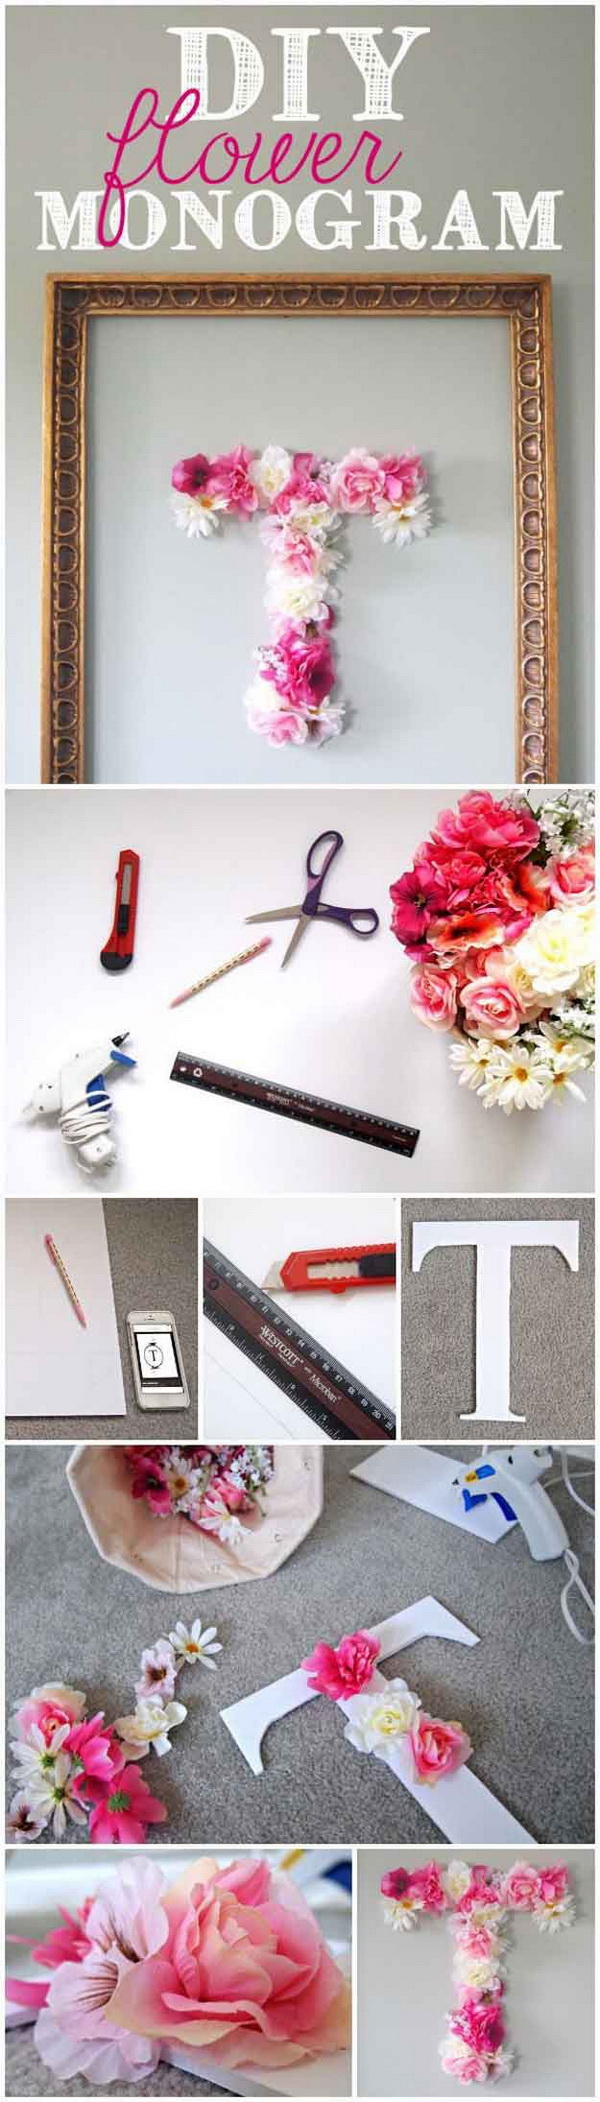 Cool Diy Ideas Tutorials For Teenage Girls Bedroom